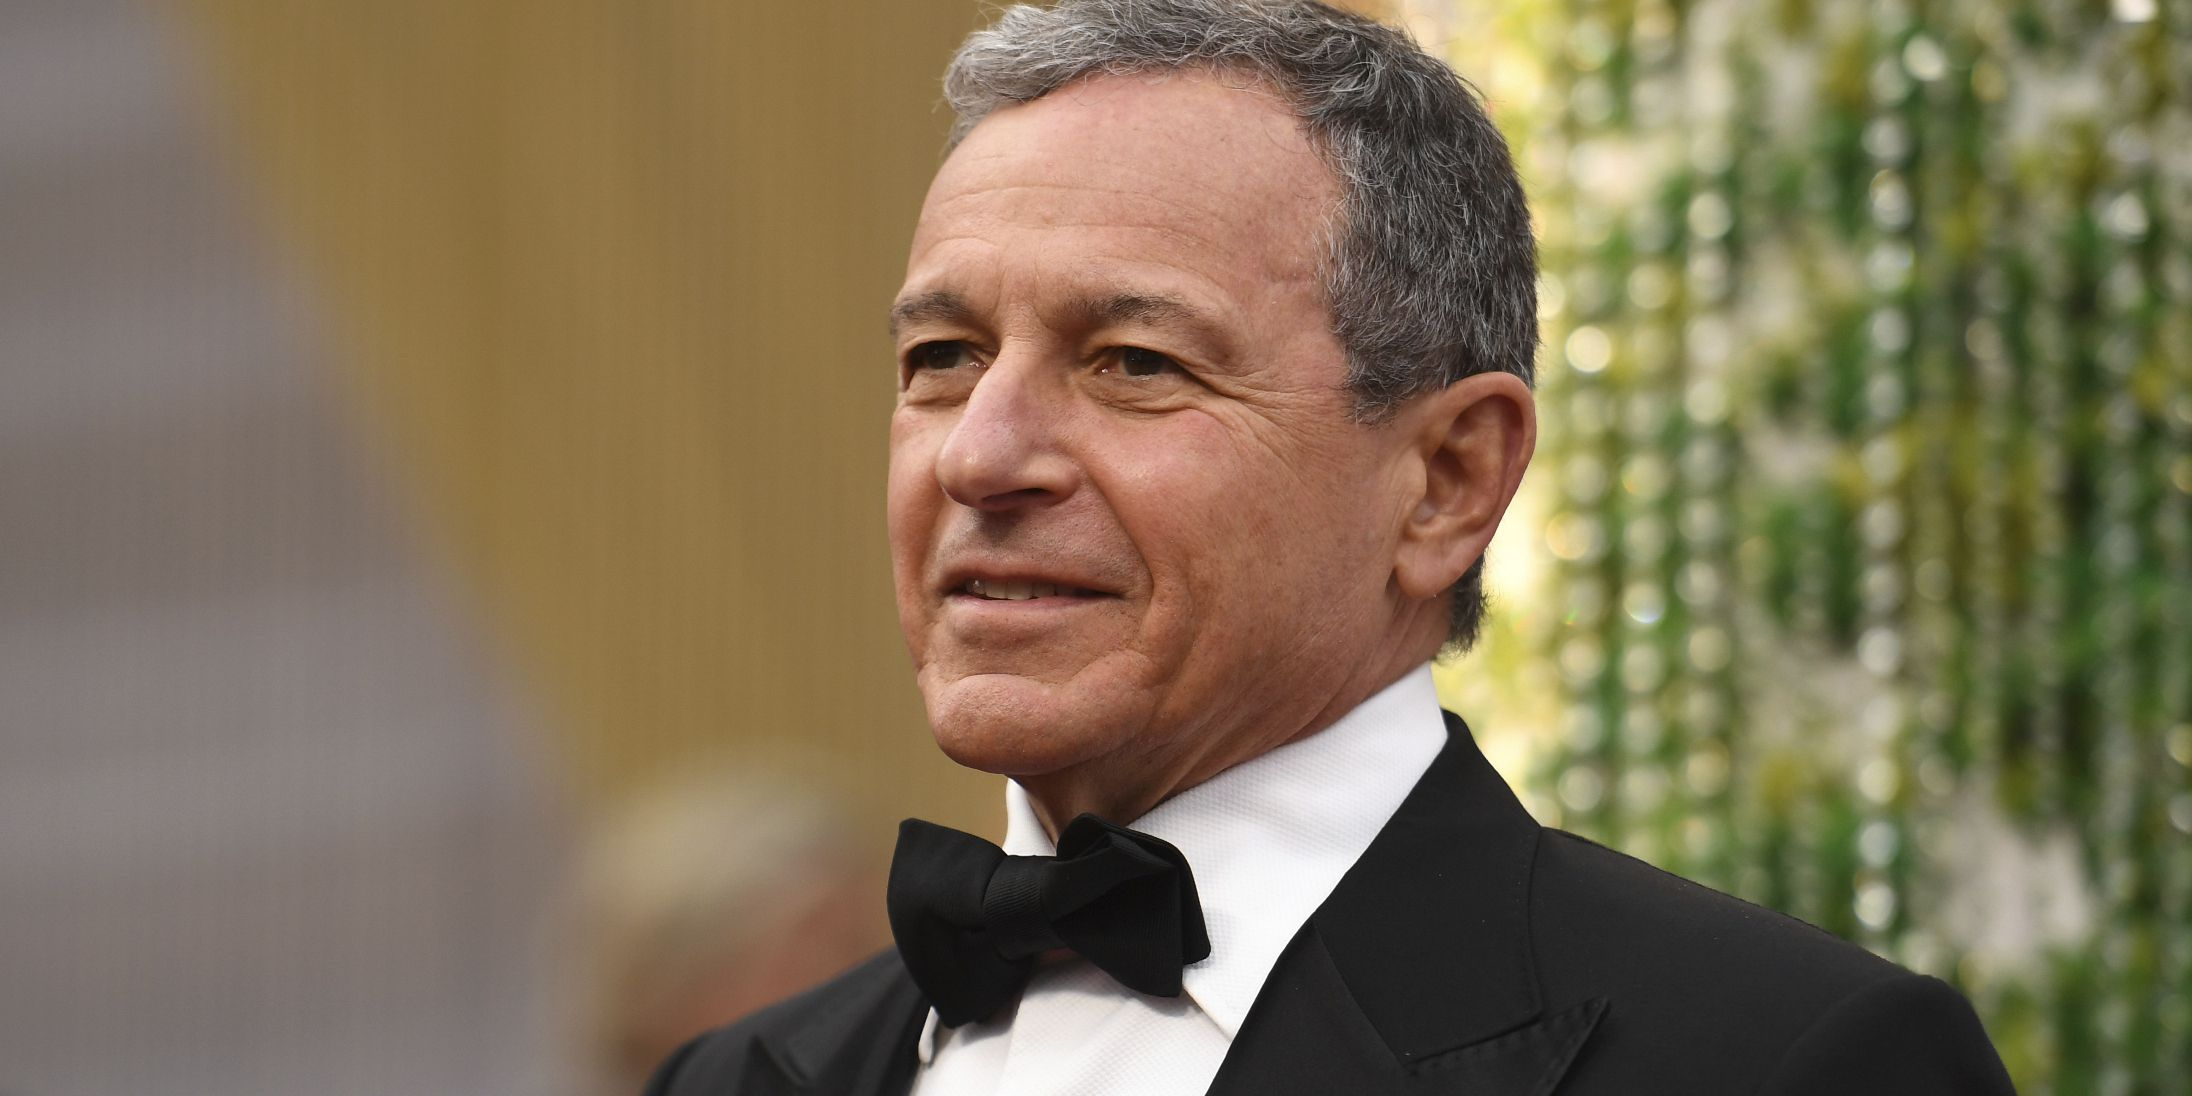 Disney CEO Bob Iger steps down in surprise announcement